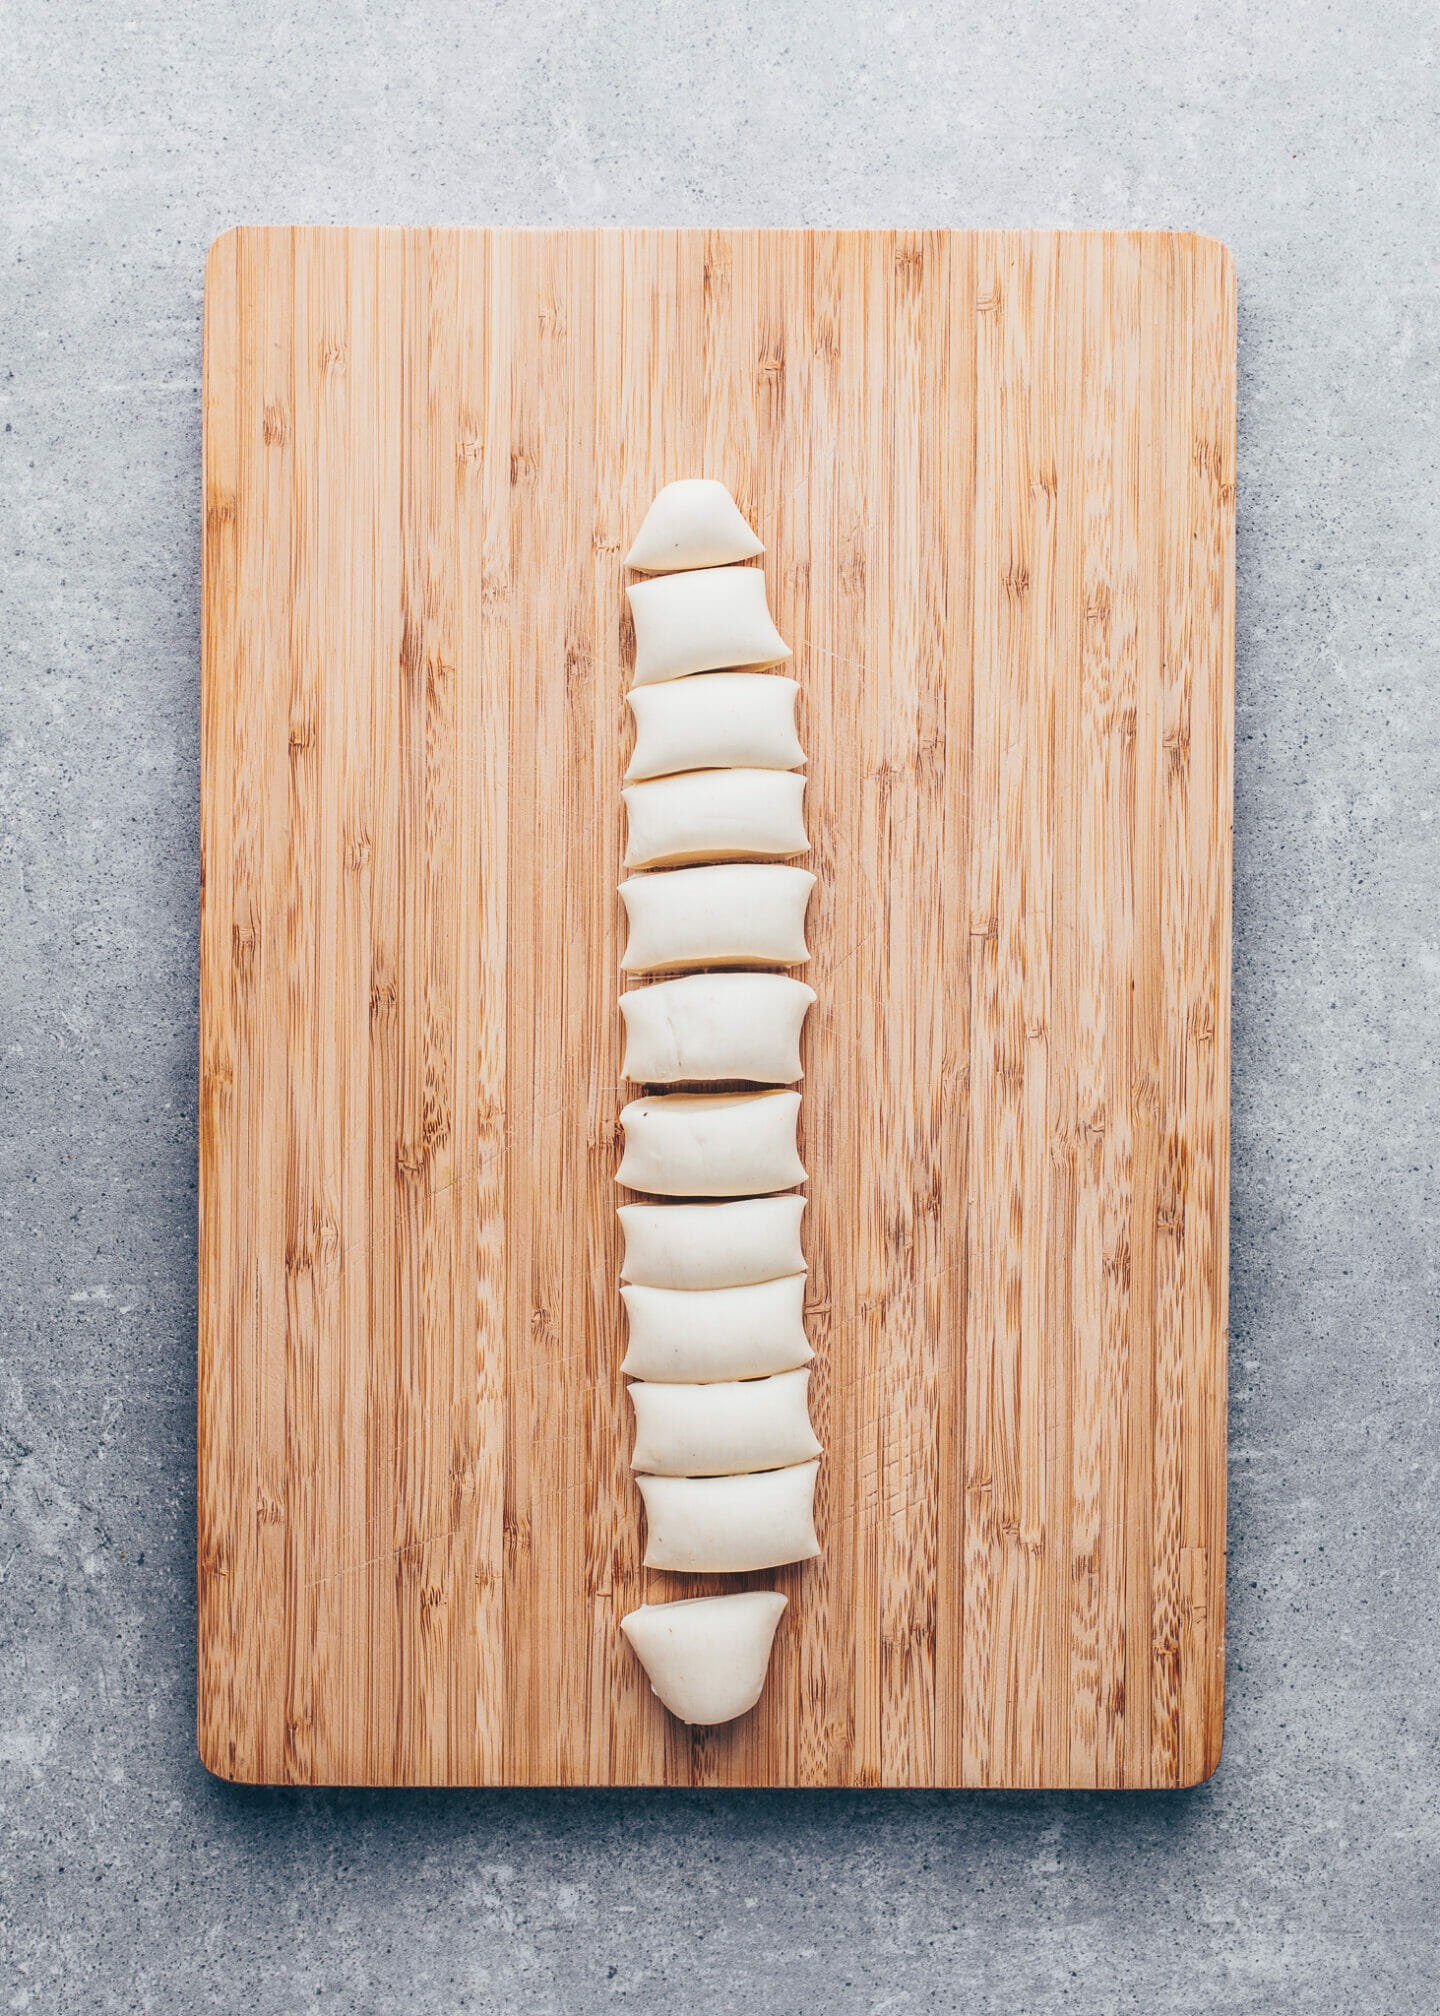 How to make Gyoza Wrappers